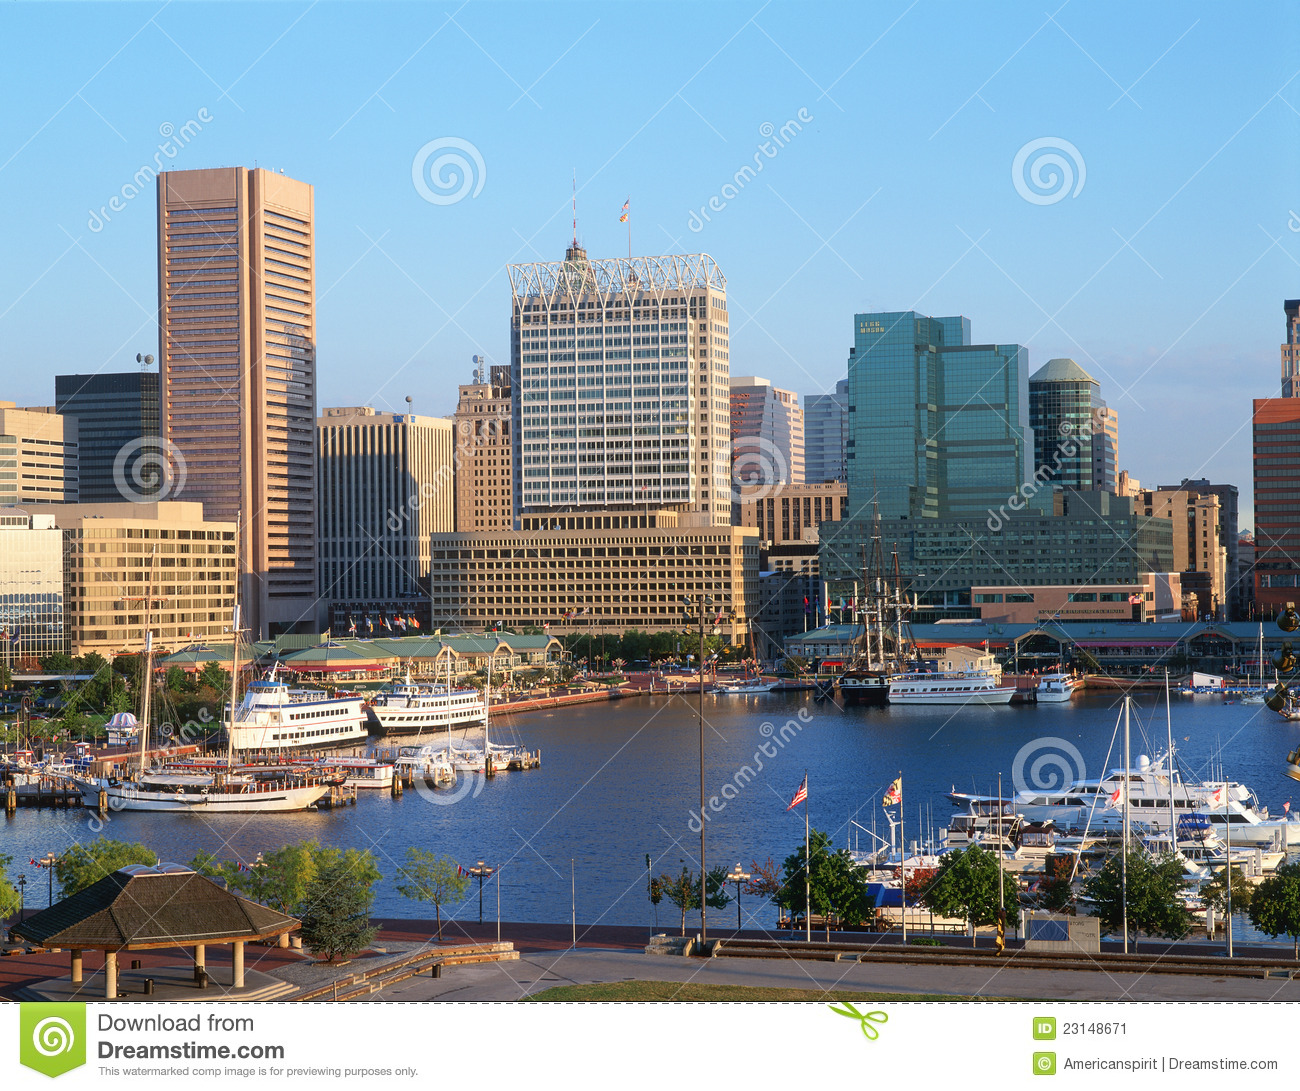 Harbor and Baltimore, MD skyline